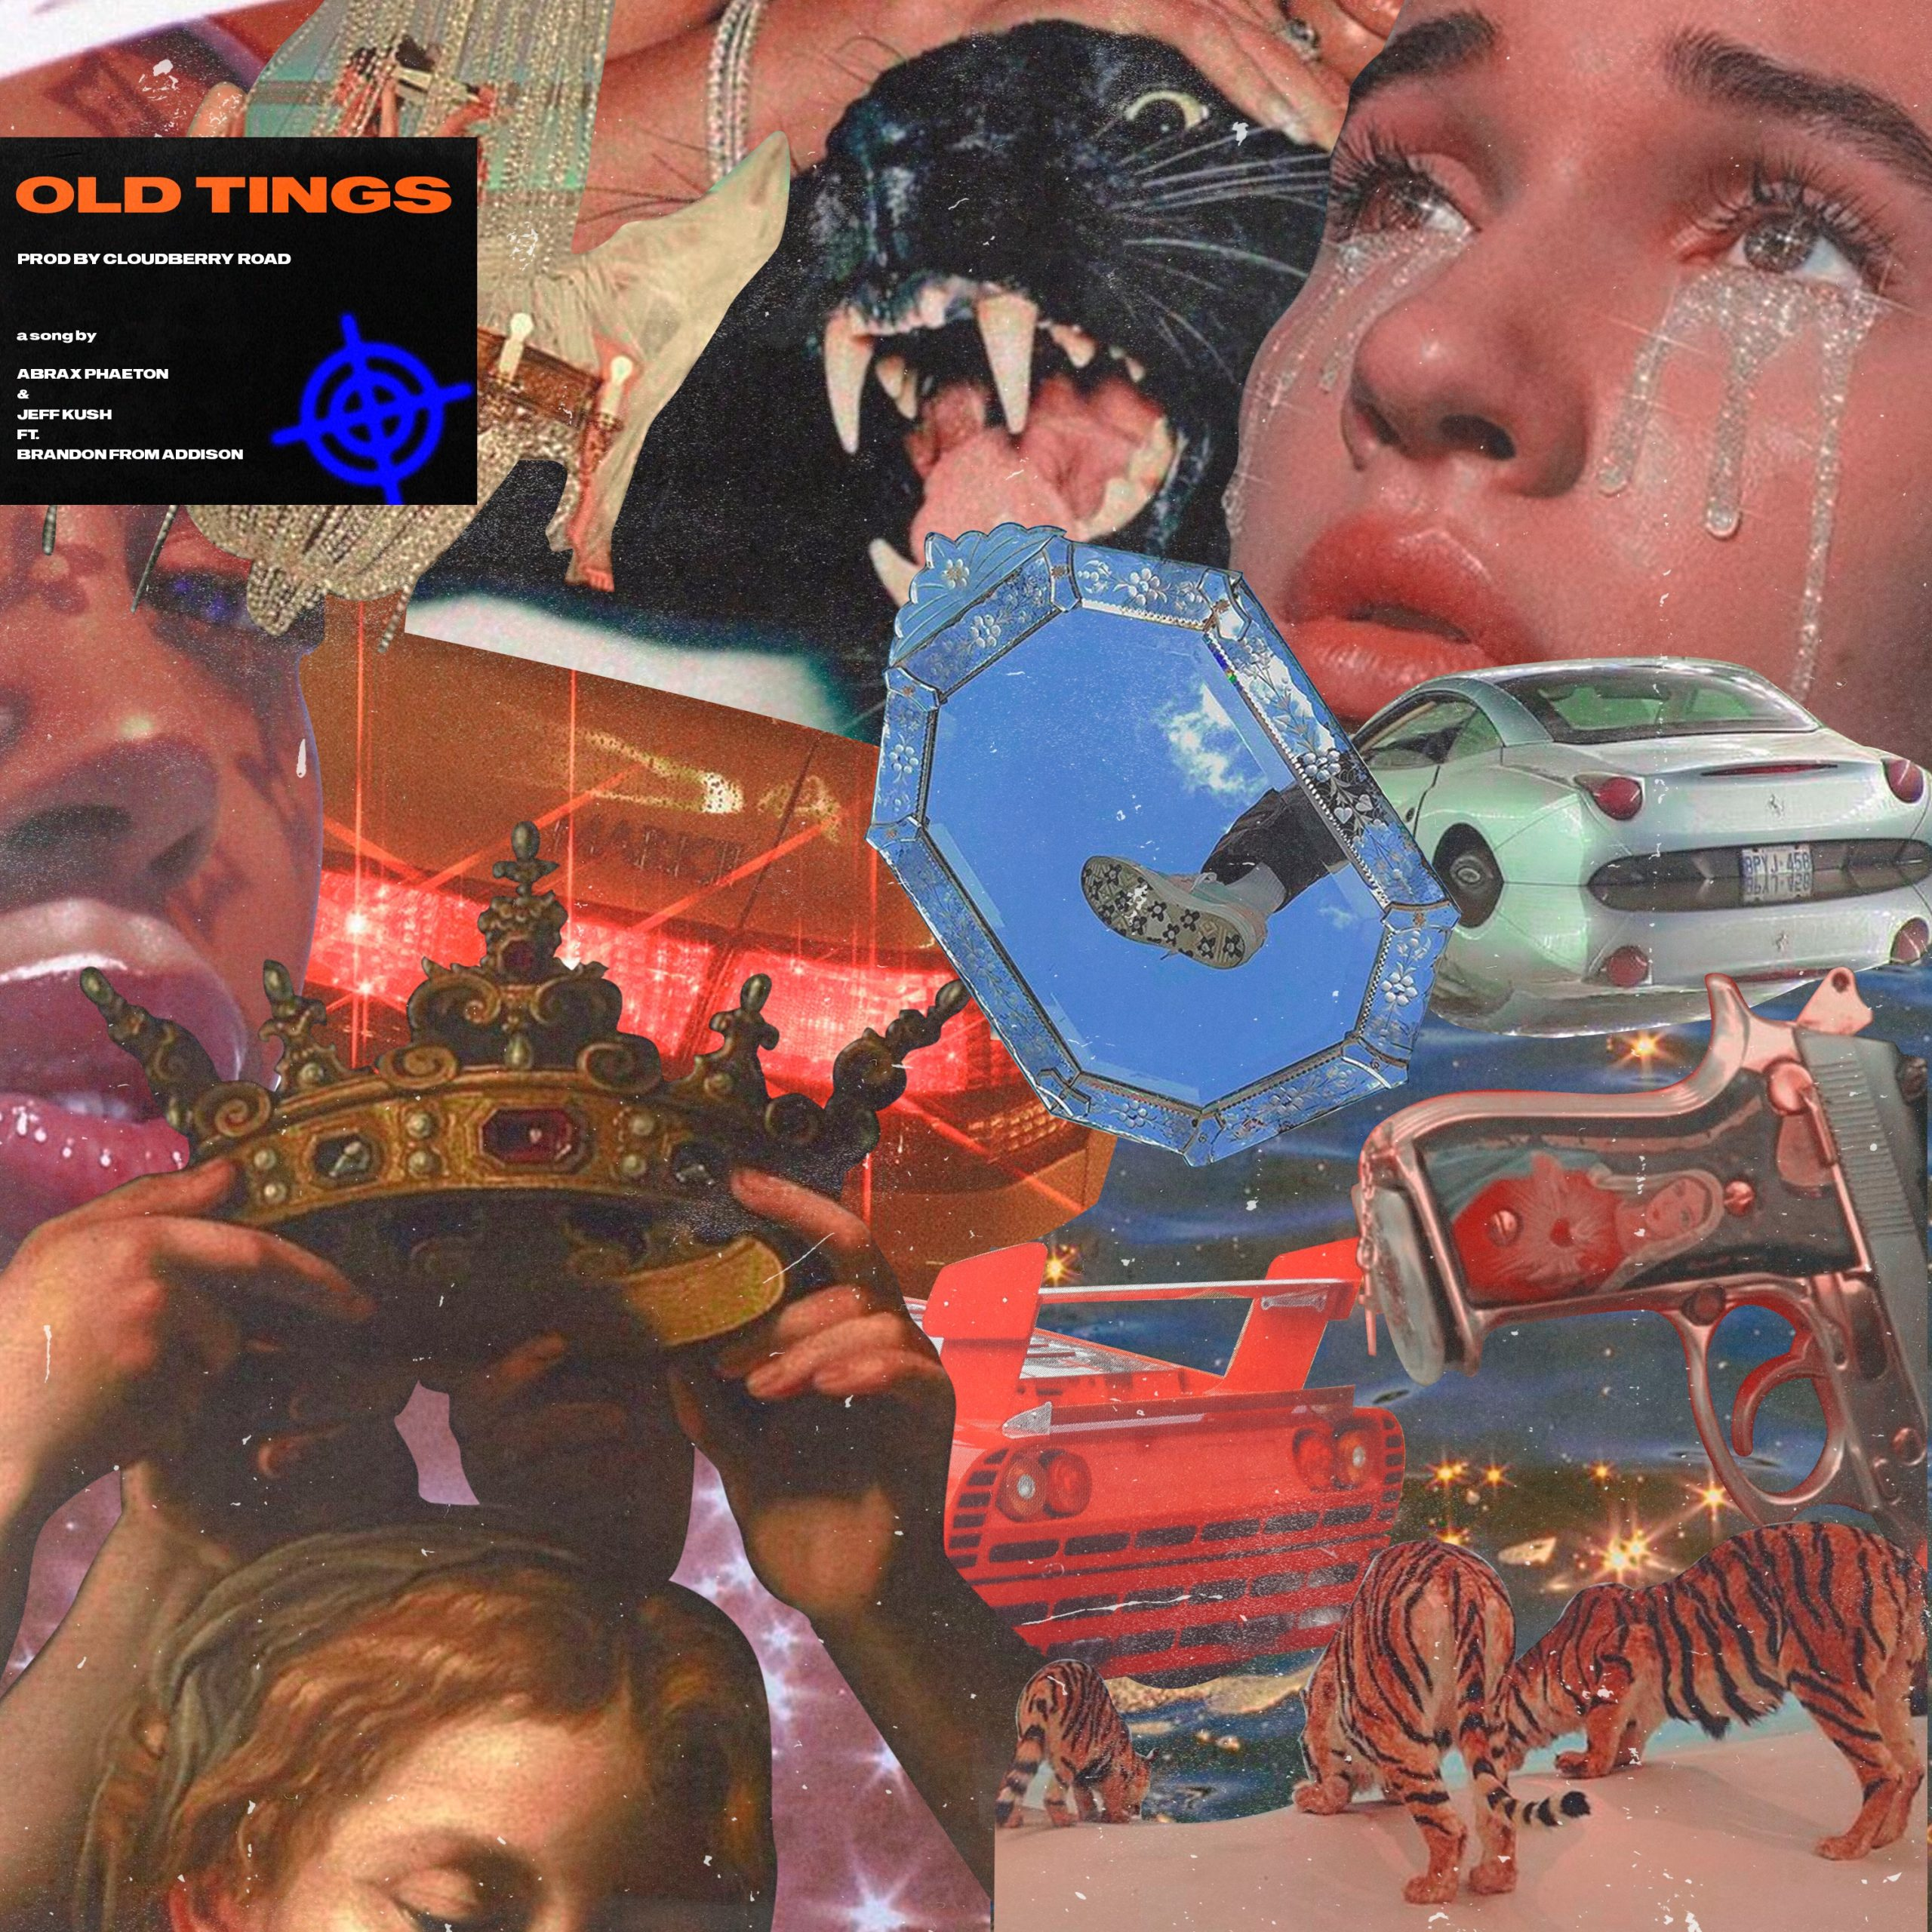 Abrax Phaeton featuring Jeff Kush & Brandon From Addison  – Old Tings Prod. by Cloudberry Rd.